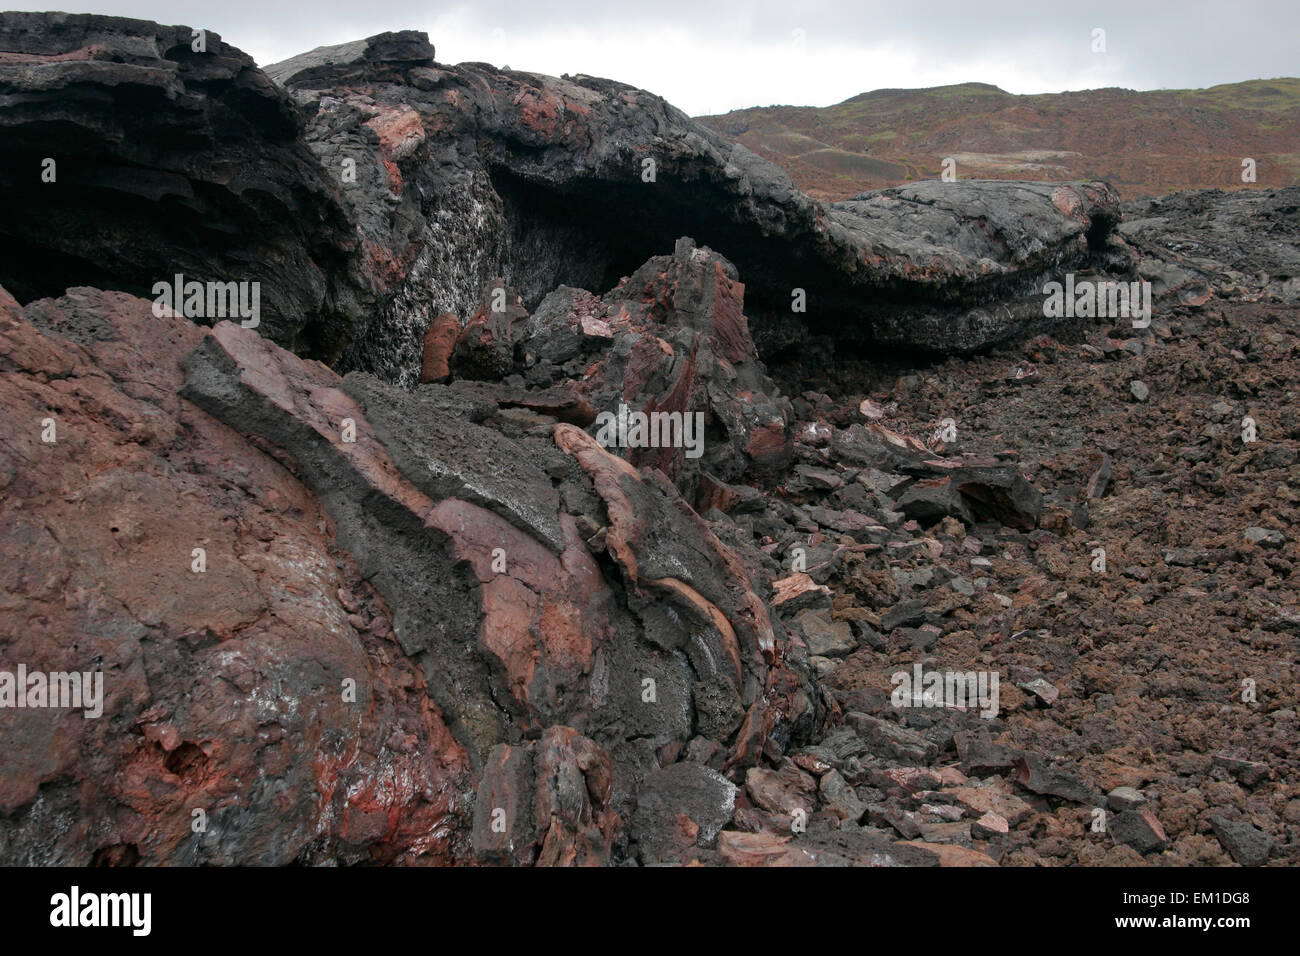 Lava field of Sierra Negra volcano, Isabela Island, Galapagos, Ecuador, South America - Stock Image